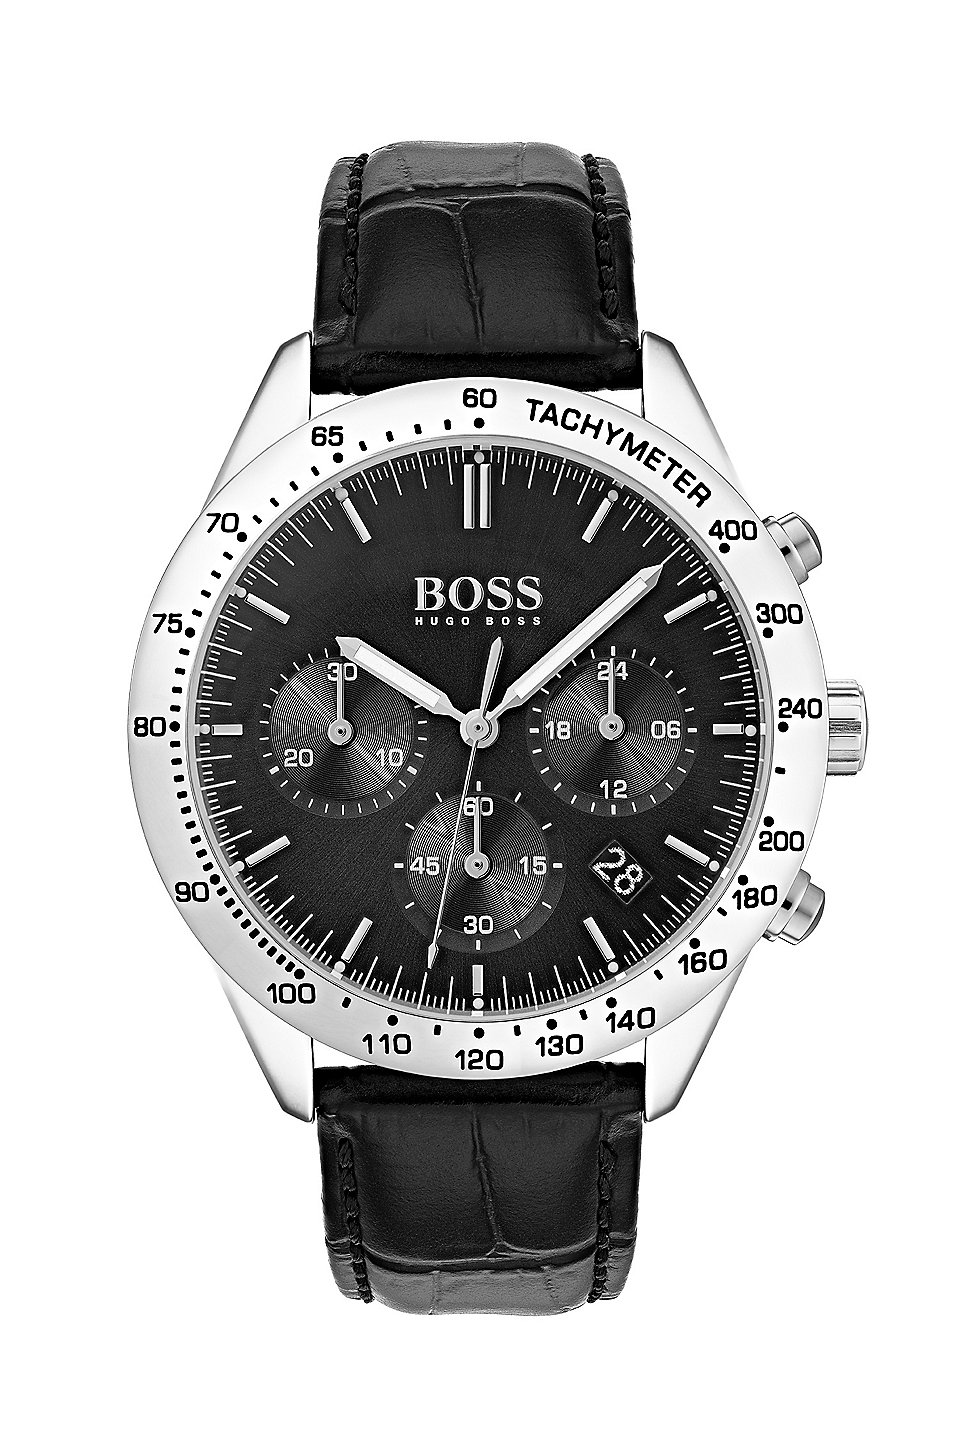 boss montre chronographe cadran noir et bracelet en. Black Bedroom Furniture Sets. Home Design Ideas